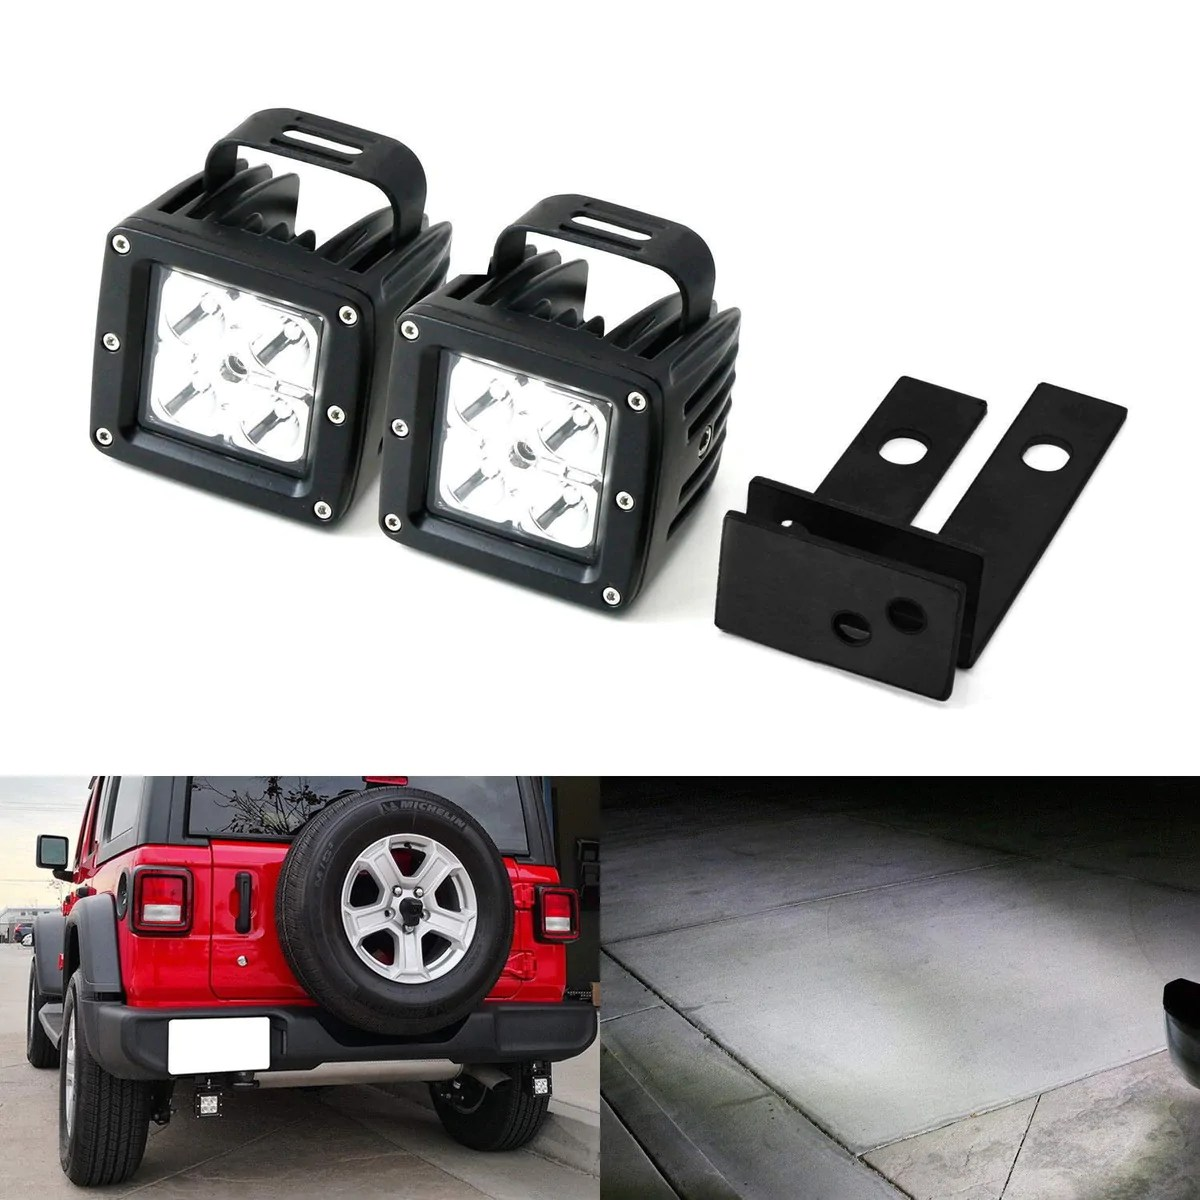 hight resolution of rear bumper searchlight reverse led pod light kit for 2018 up jeep wrangler jl includes 2 20w high power cree led pods rear bumper frame mounting